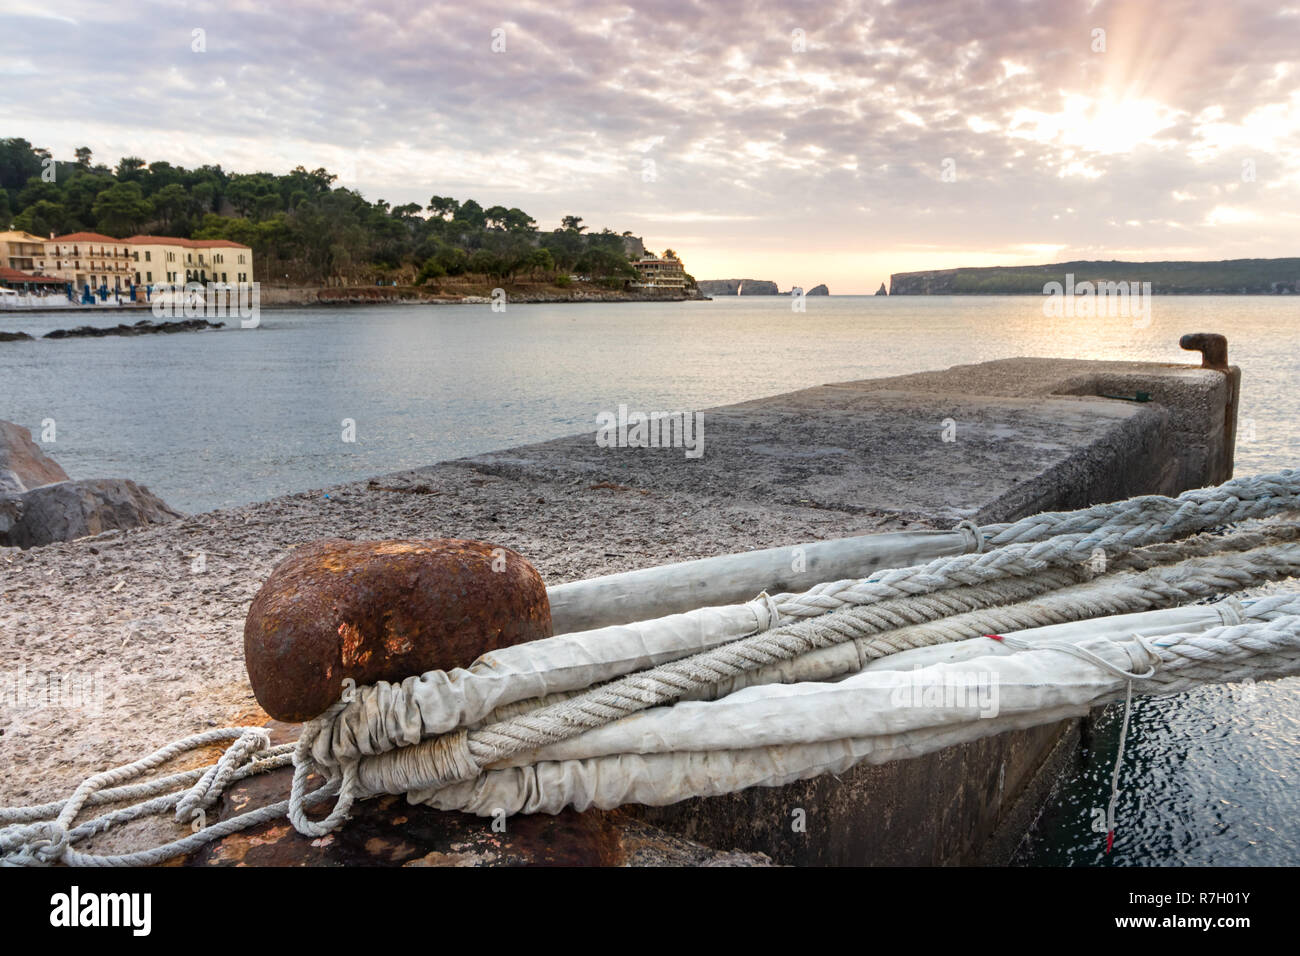 A big mooring line of a cruise ship on a bolland the the port of Pylos, Greece. - Stock Image